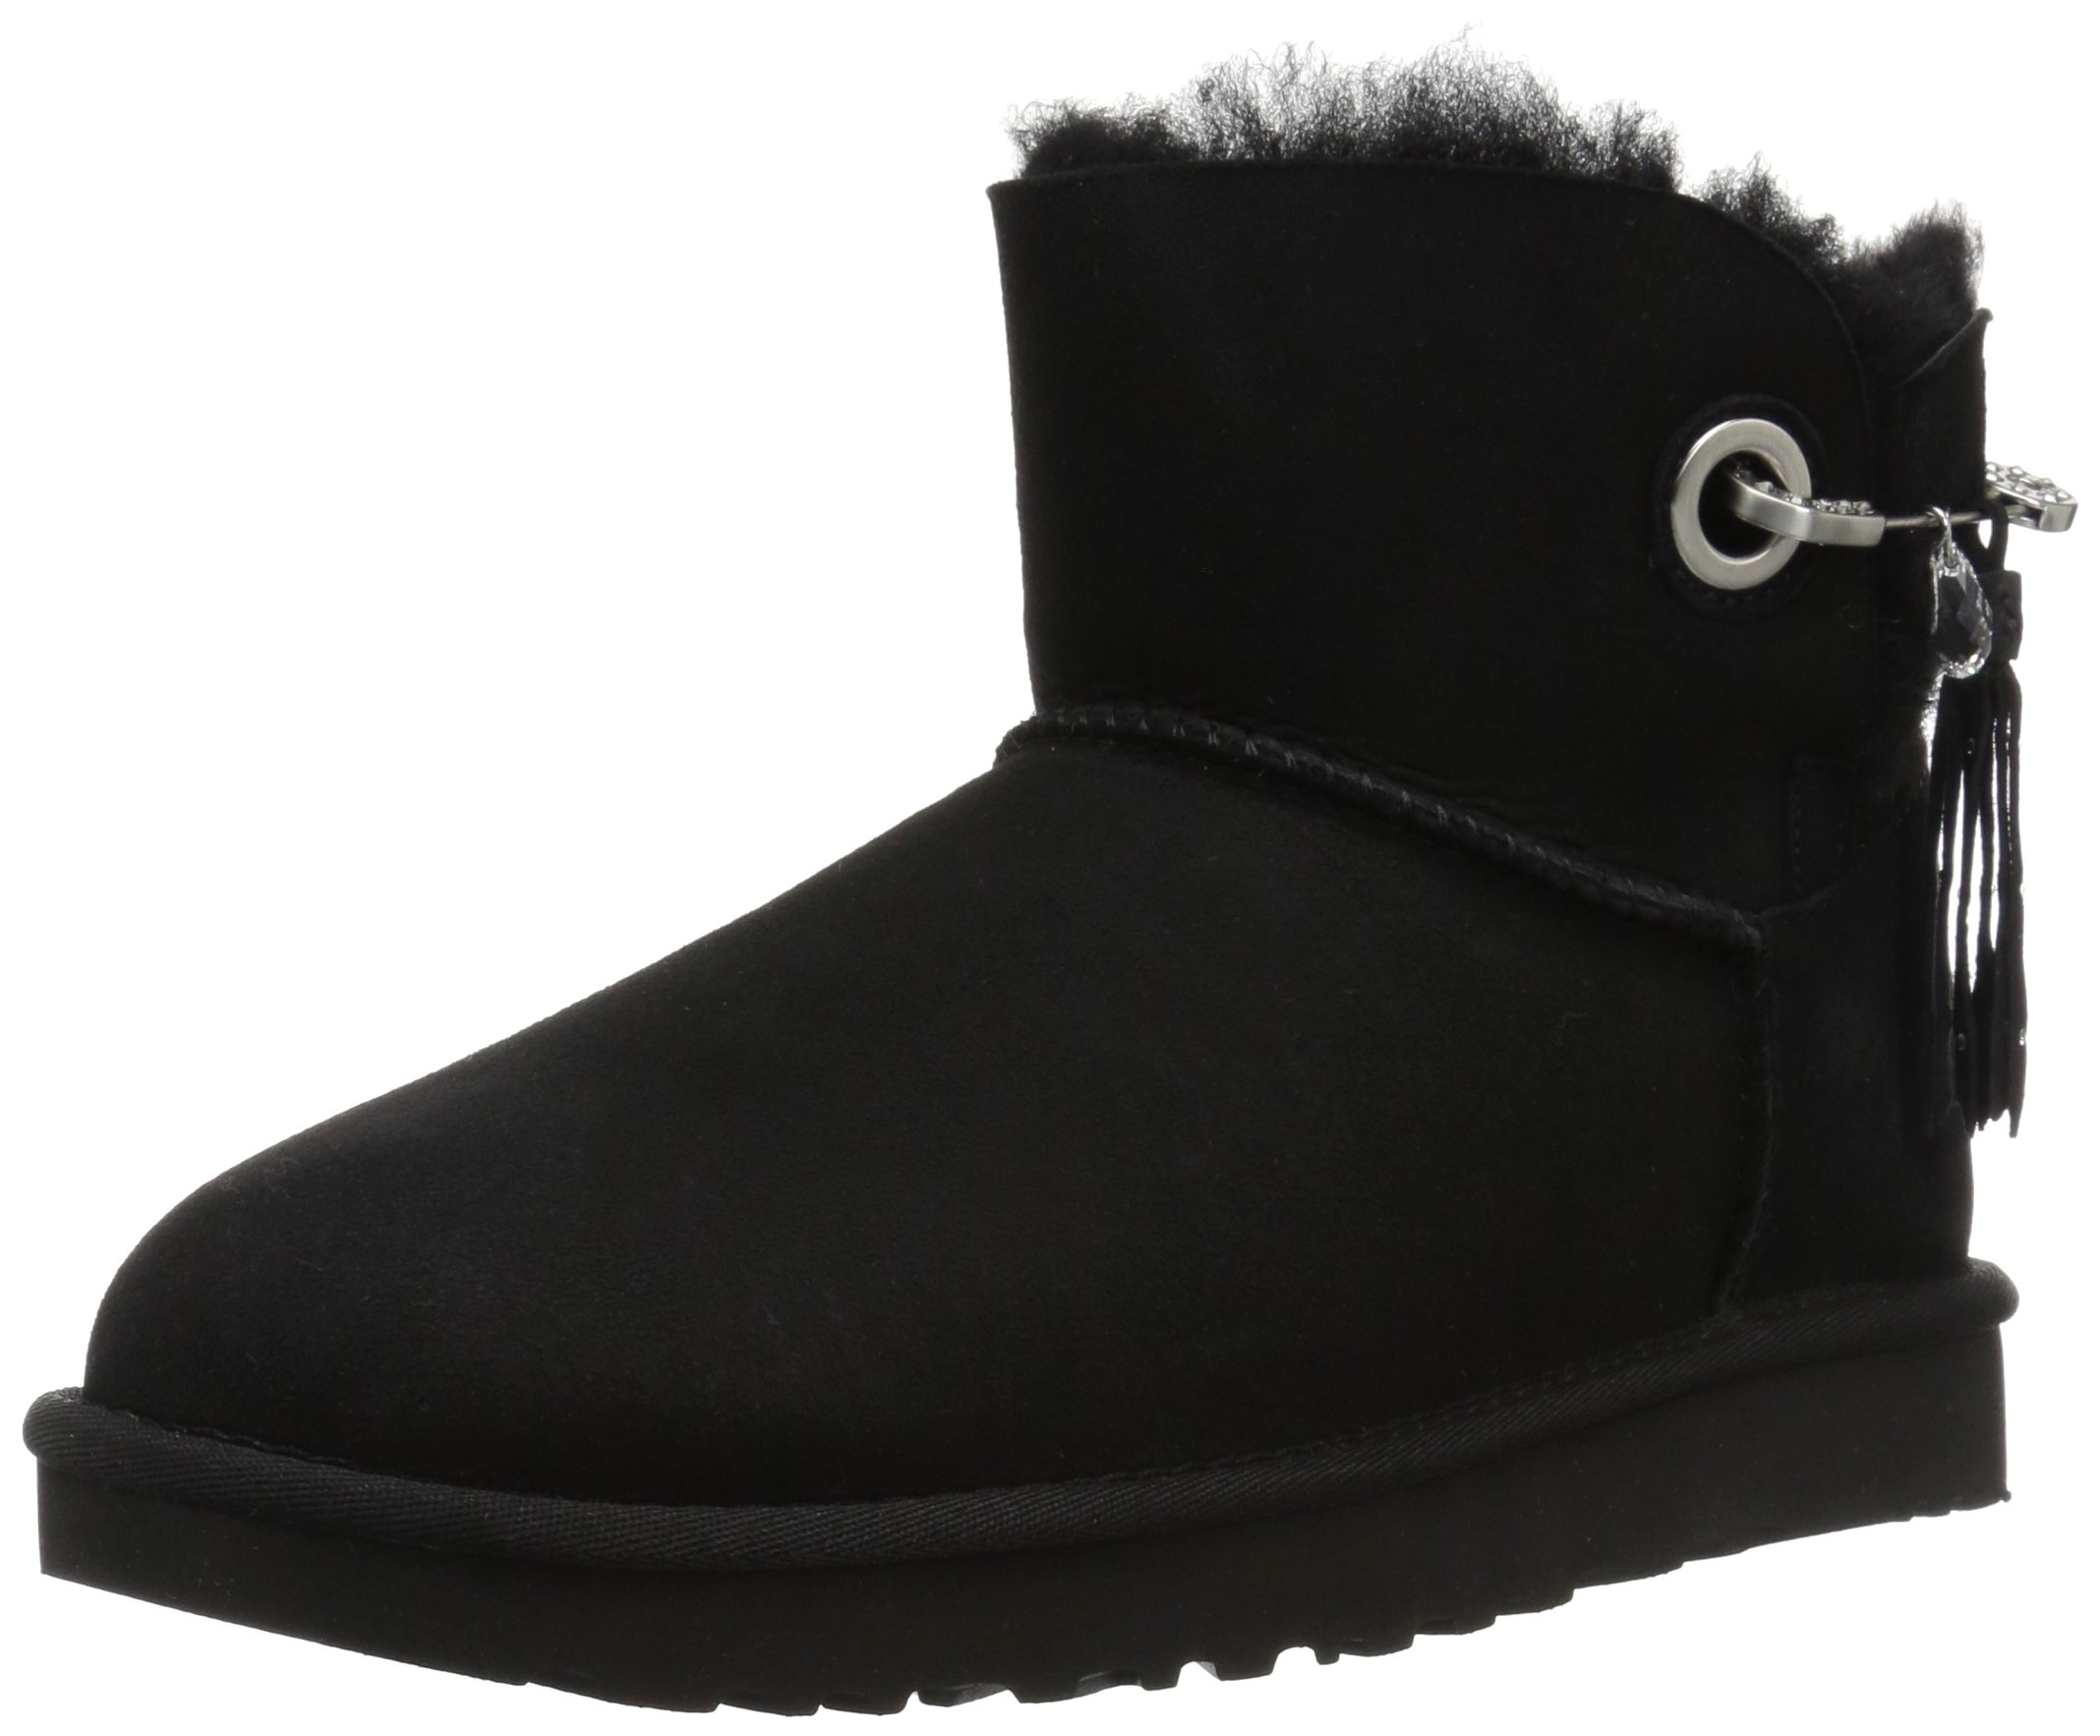 UGG Women's Josey Winter Boot, Black, 10 M US